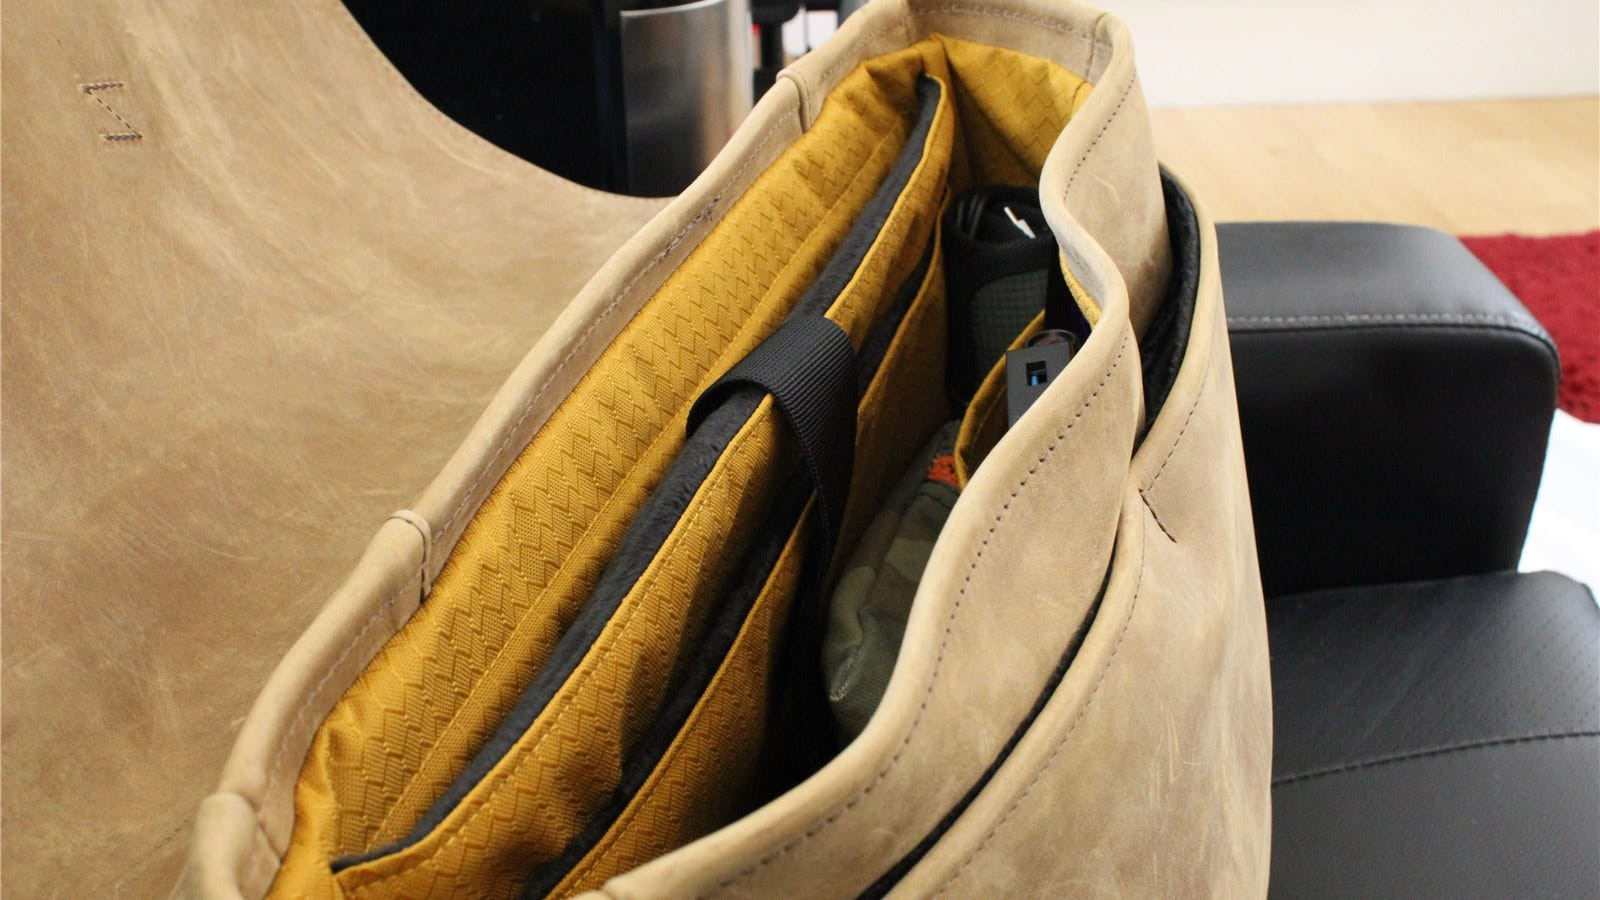 The inside of the WaterField Executive Leather Messenger